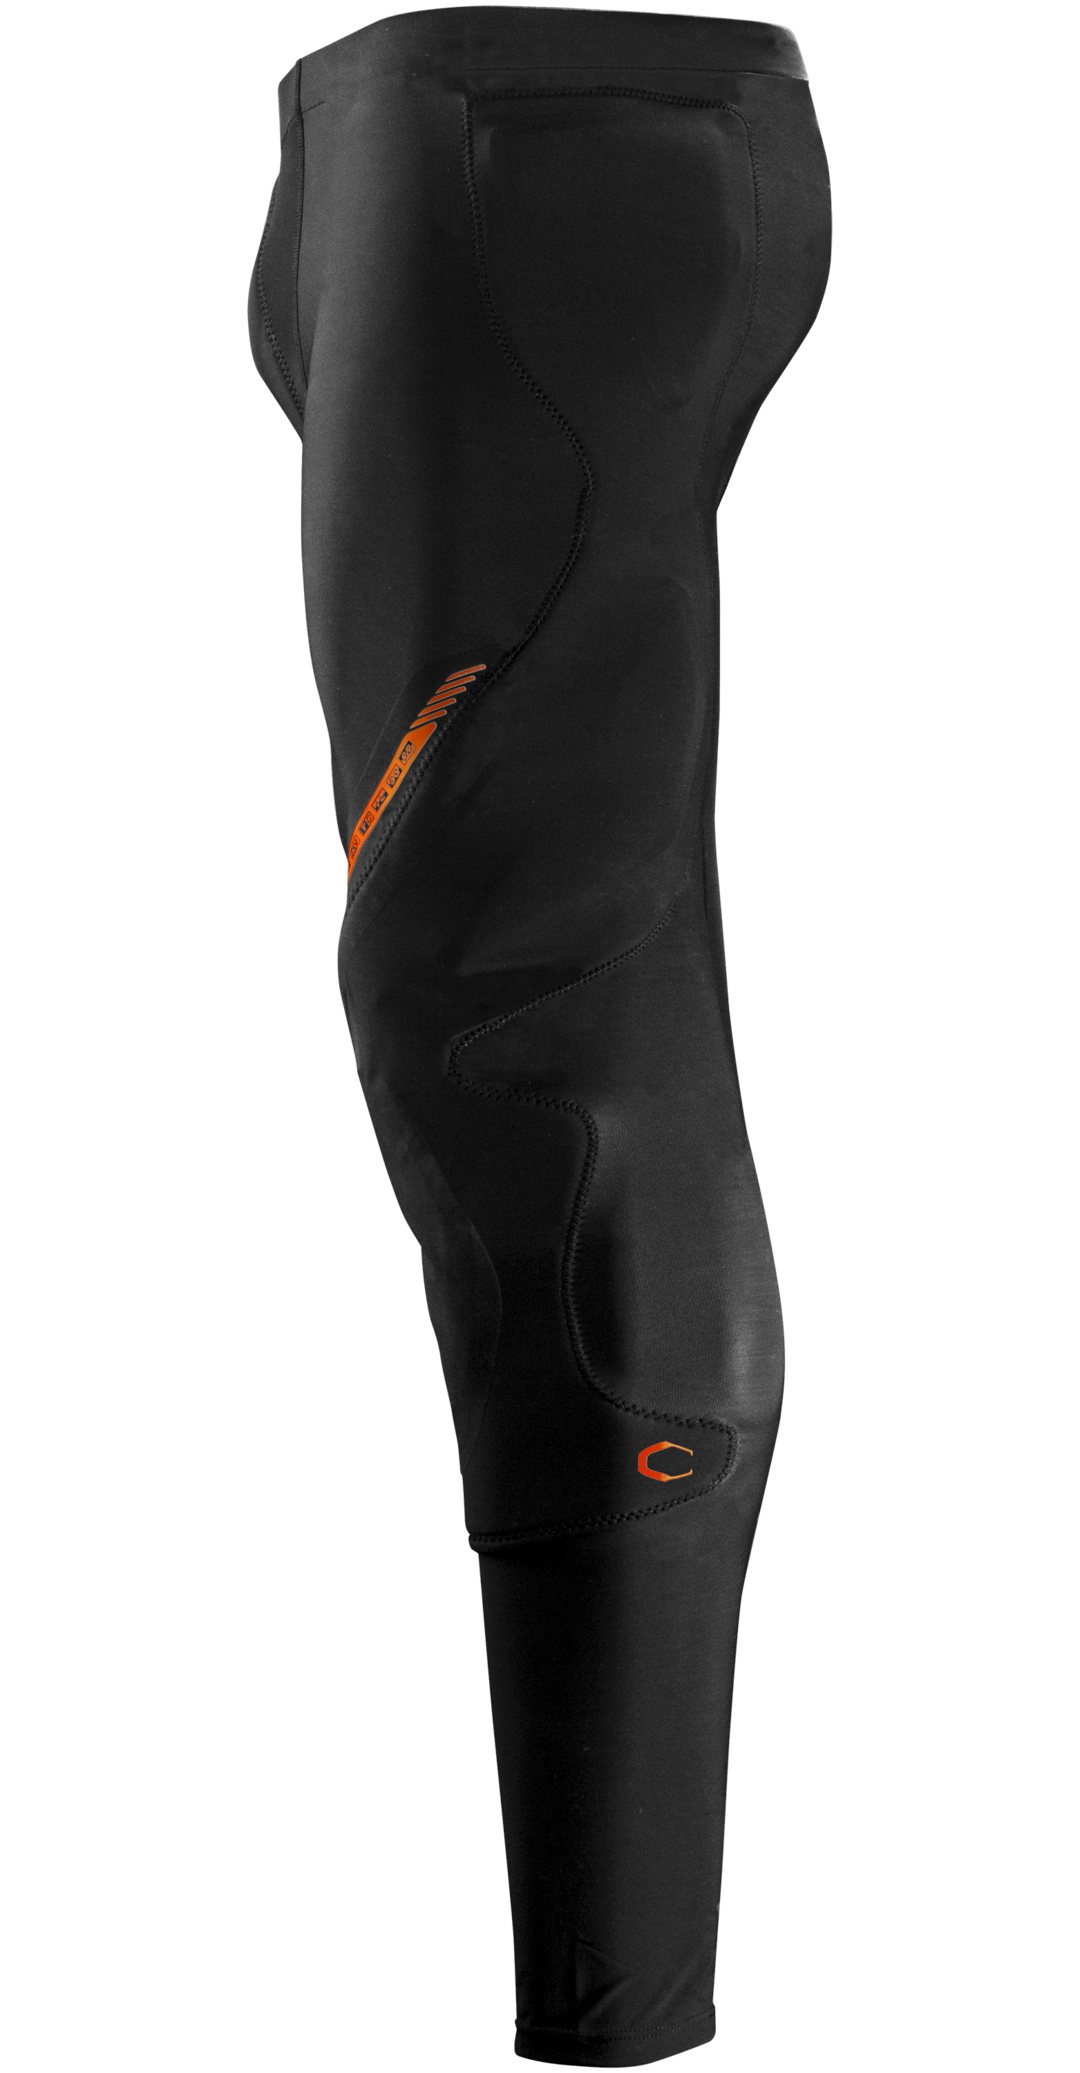 Carbon SC Protective Bottom - Small